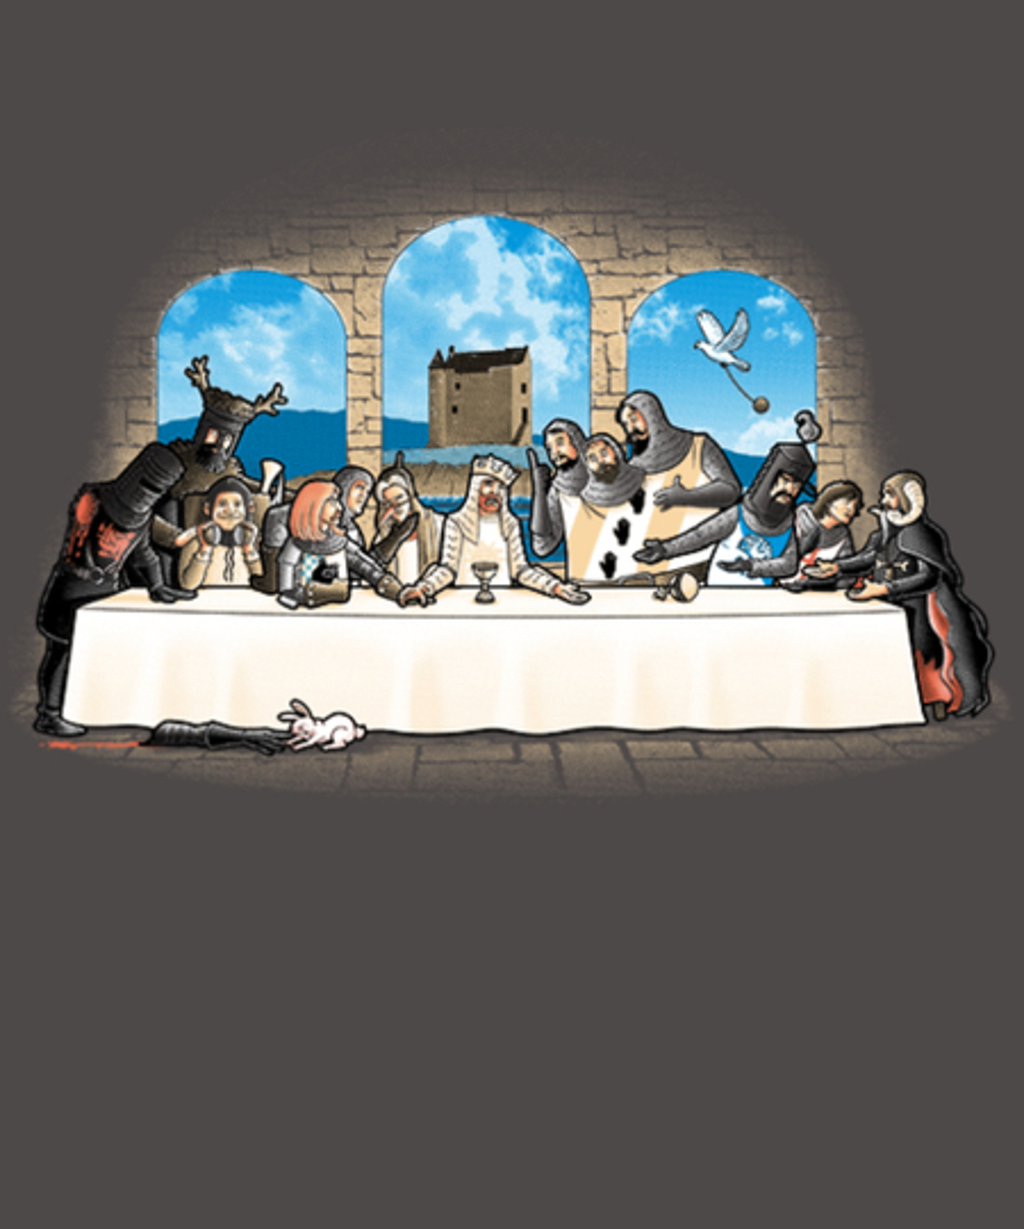 Qwertee: Holy Grail dinner